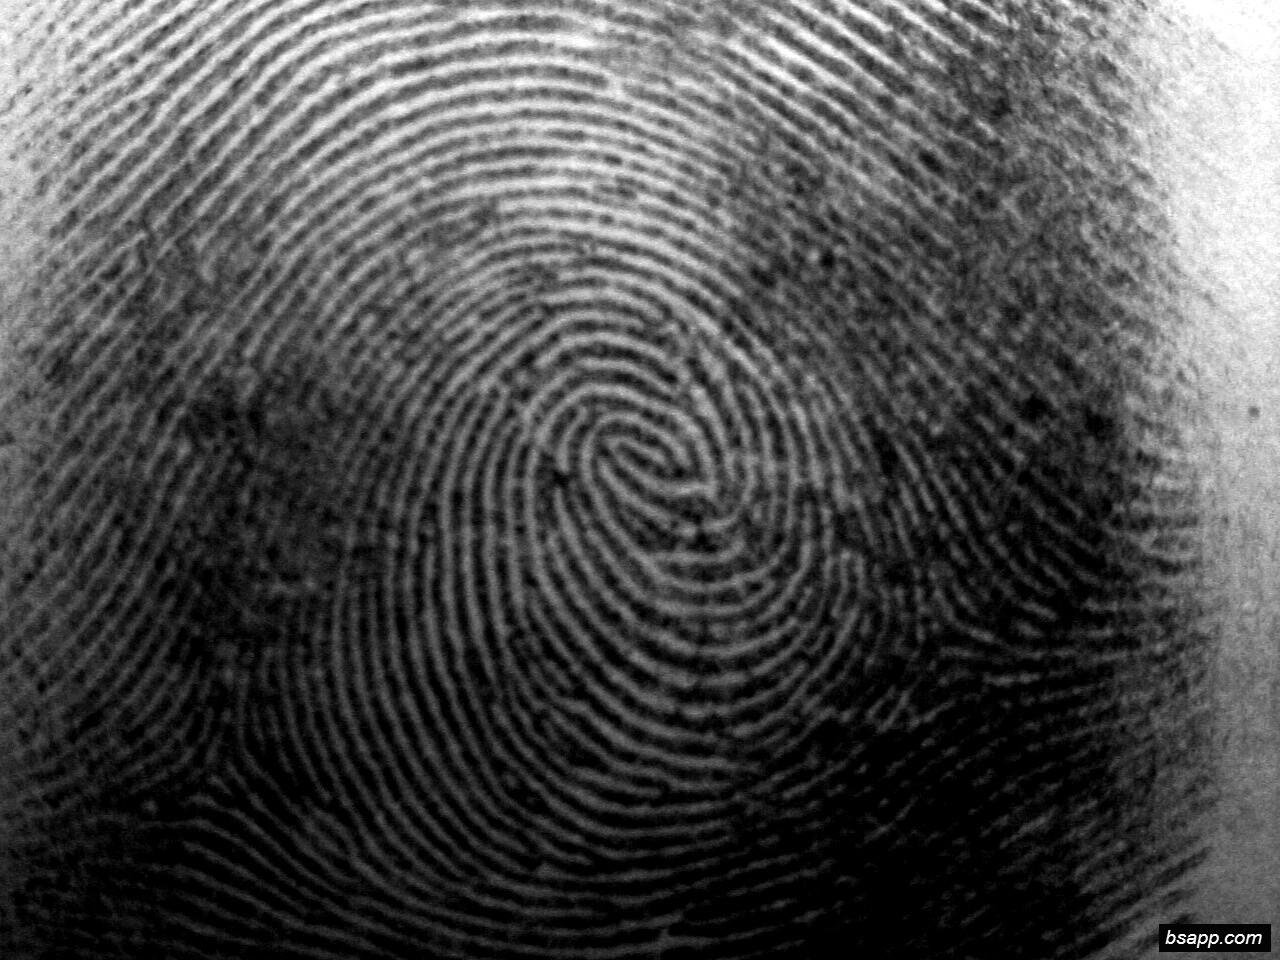 Psychological and diagnostic significance of finger prints DSC00882